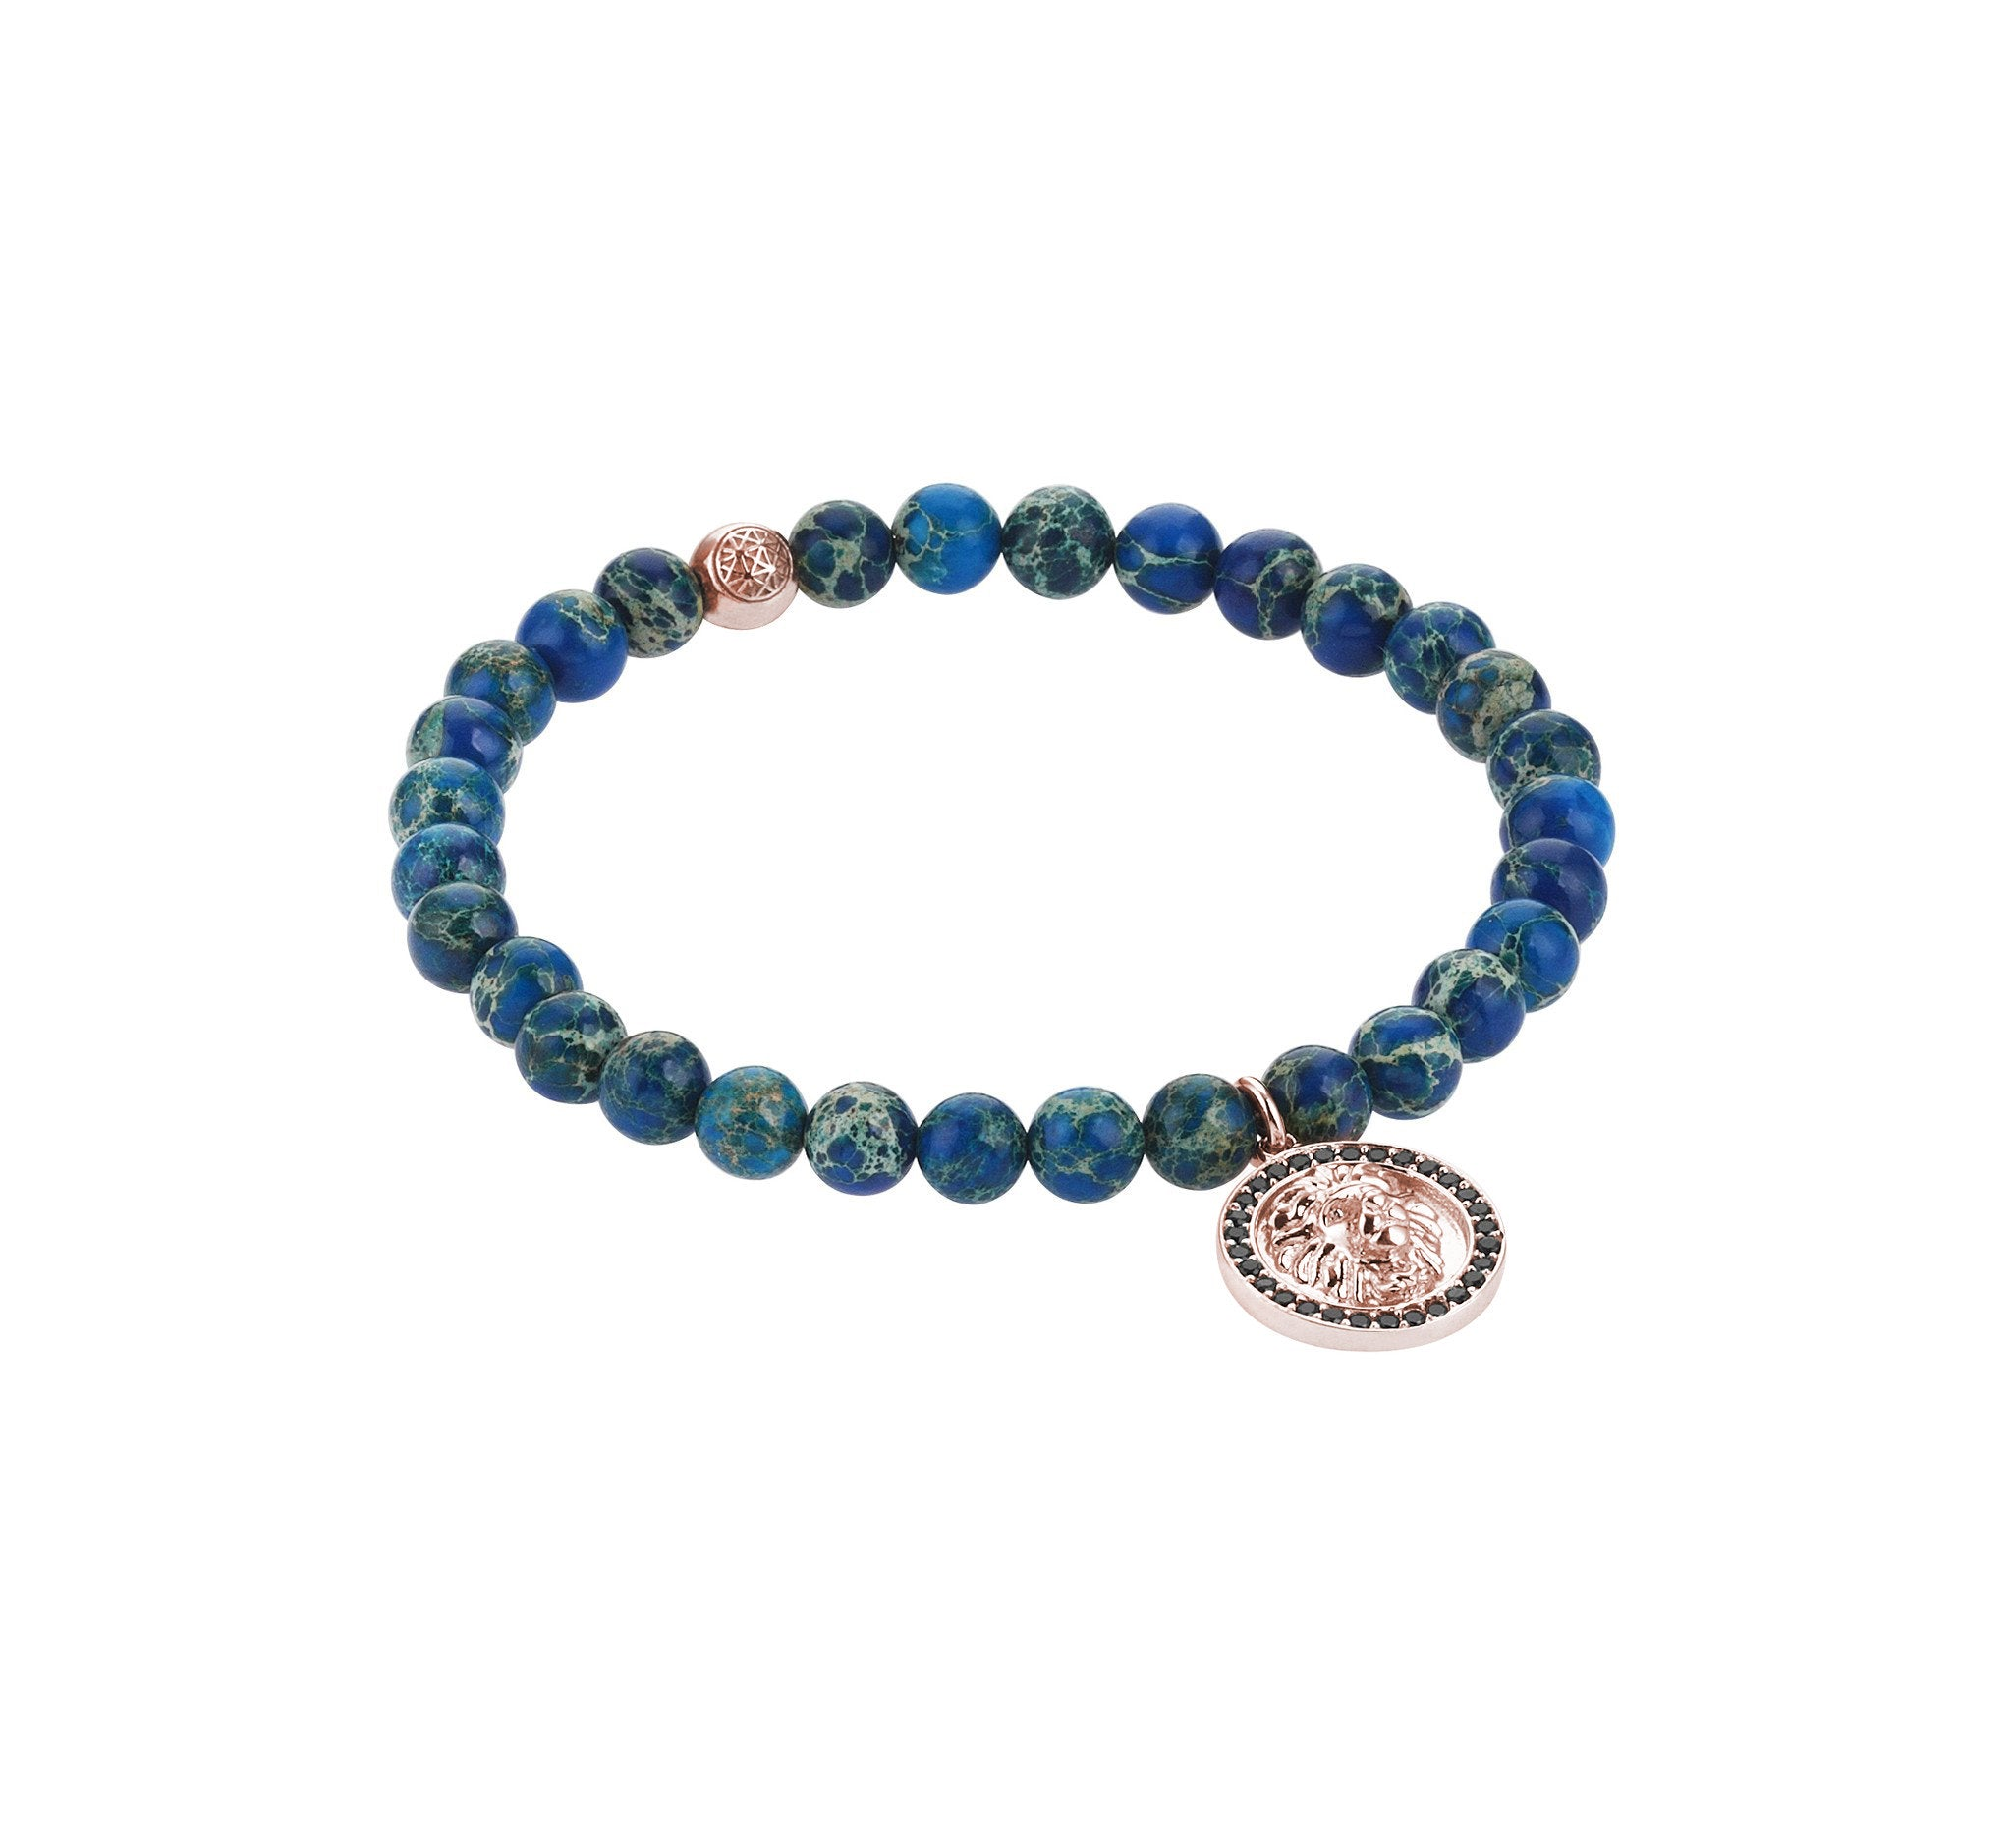 Mens Leo Charm Bracelet - Rose Gold - Blue Jasper